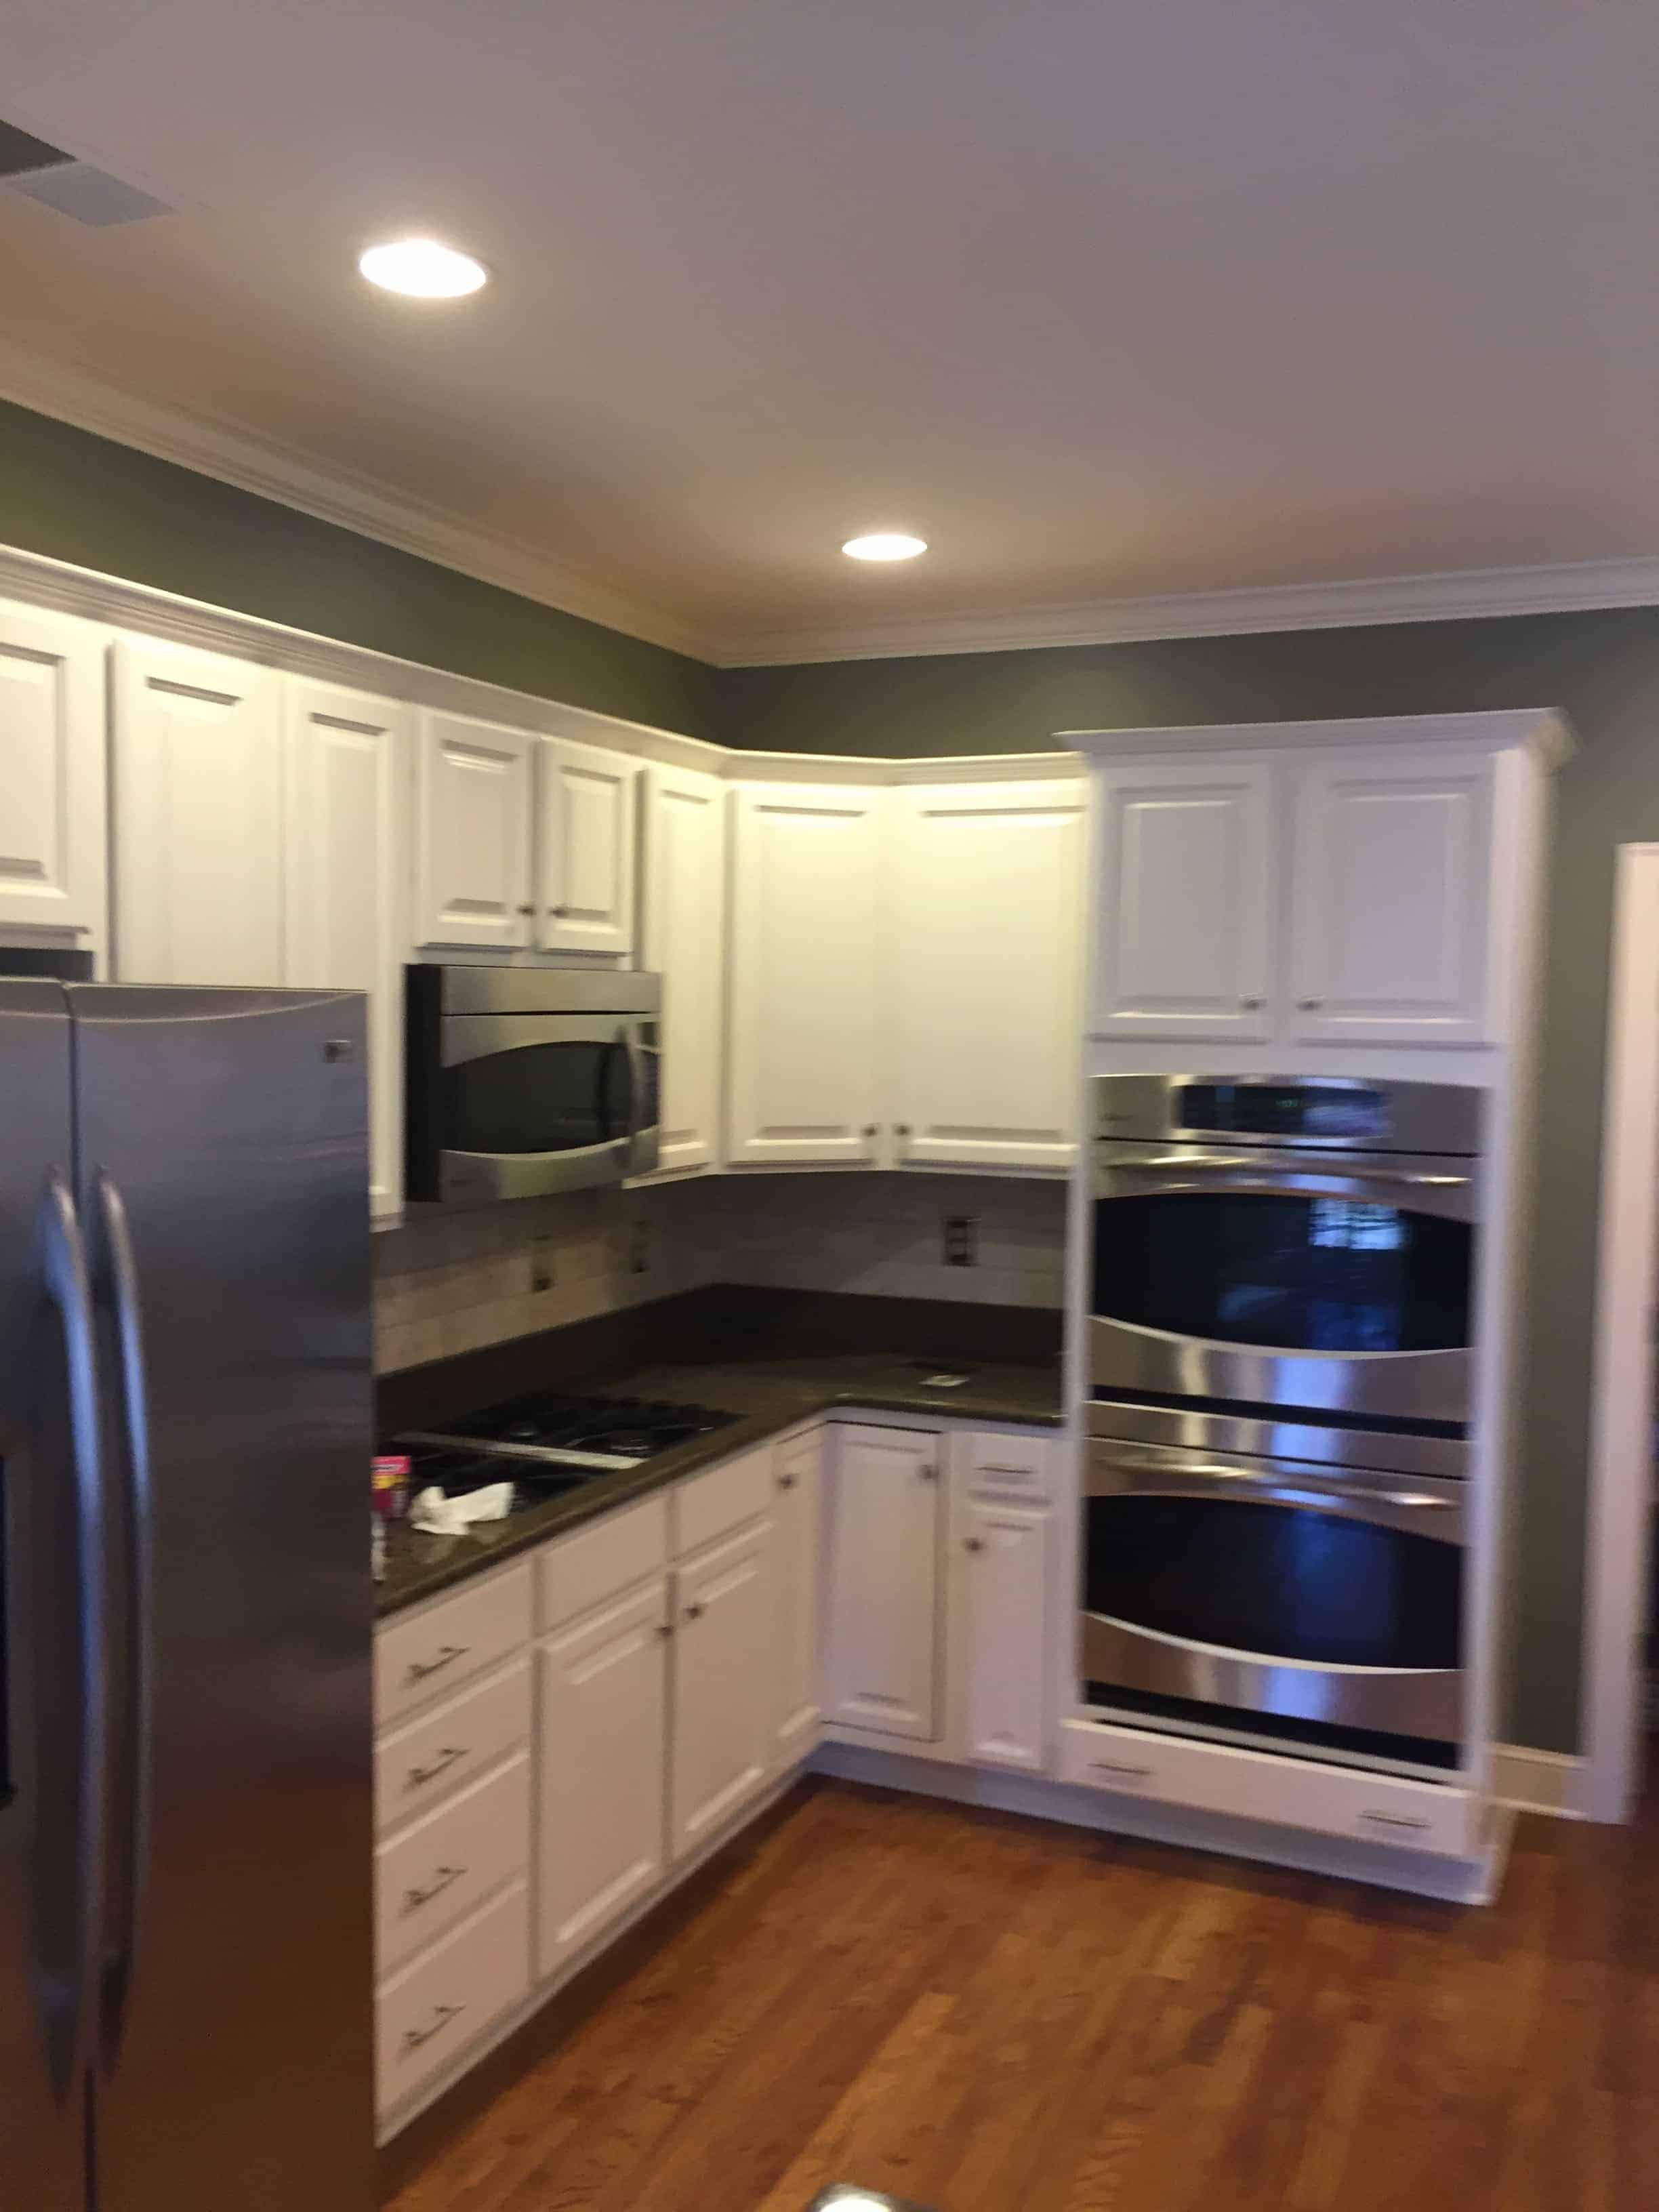 Kitchen Cabinet Painting : kitchen-cabinets-memphis - kurilladesign.com